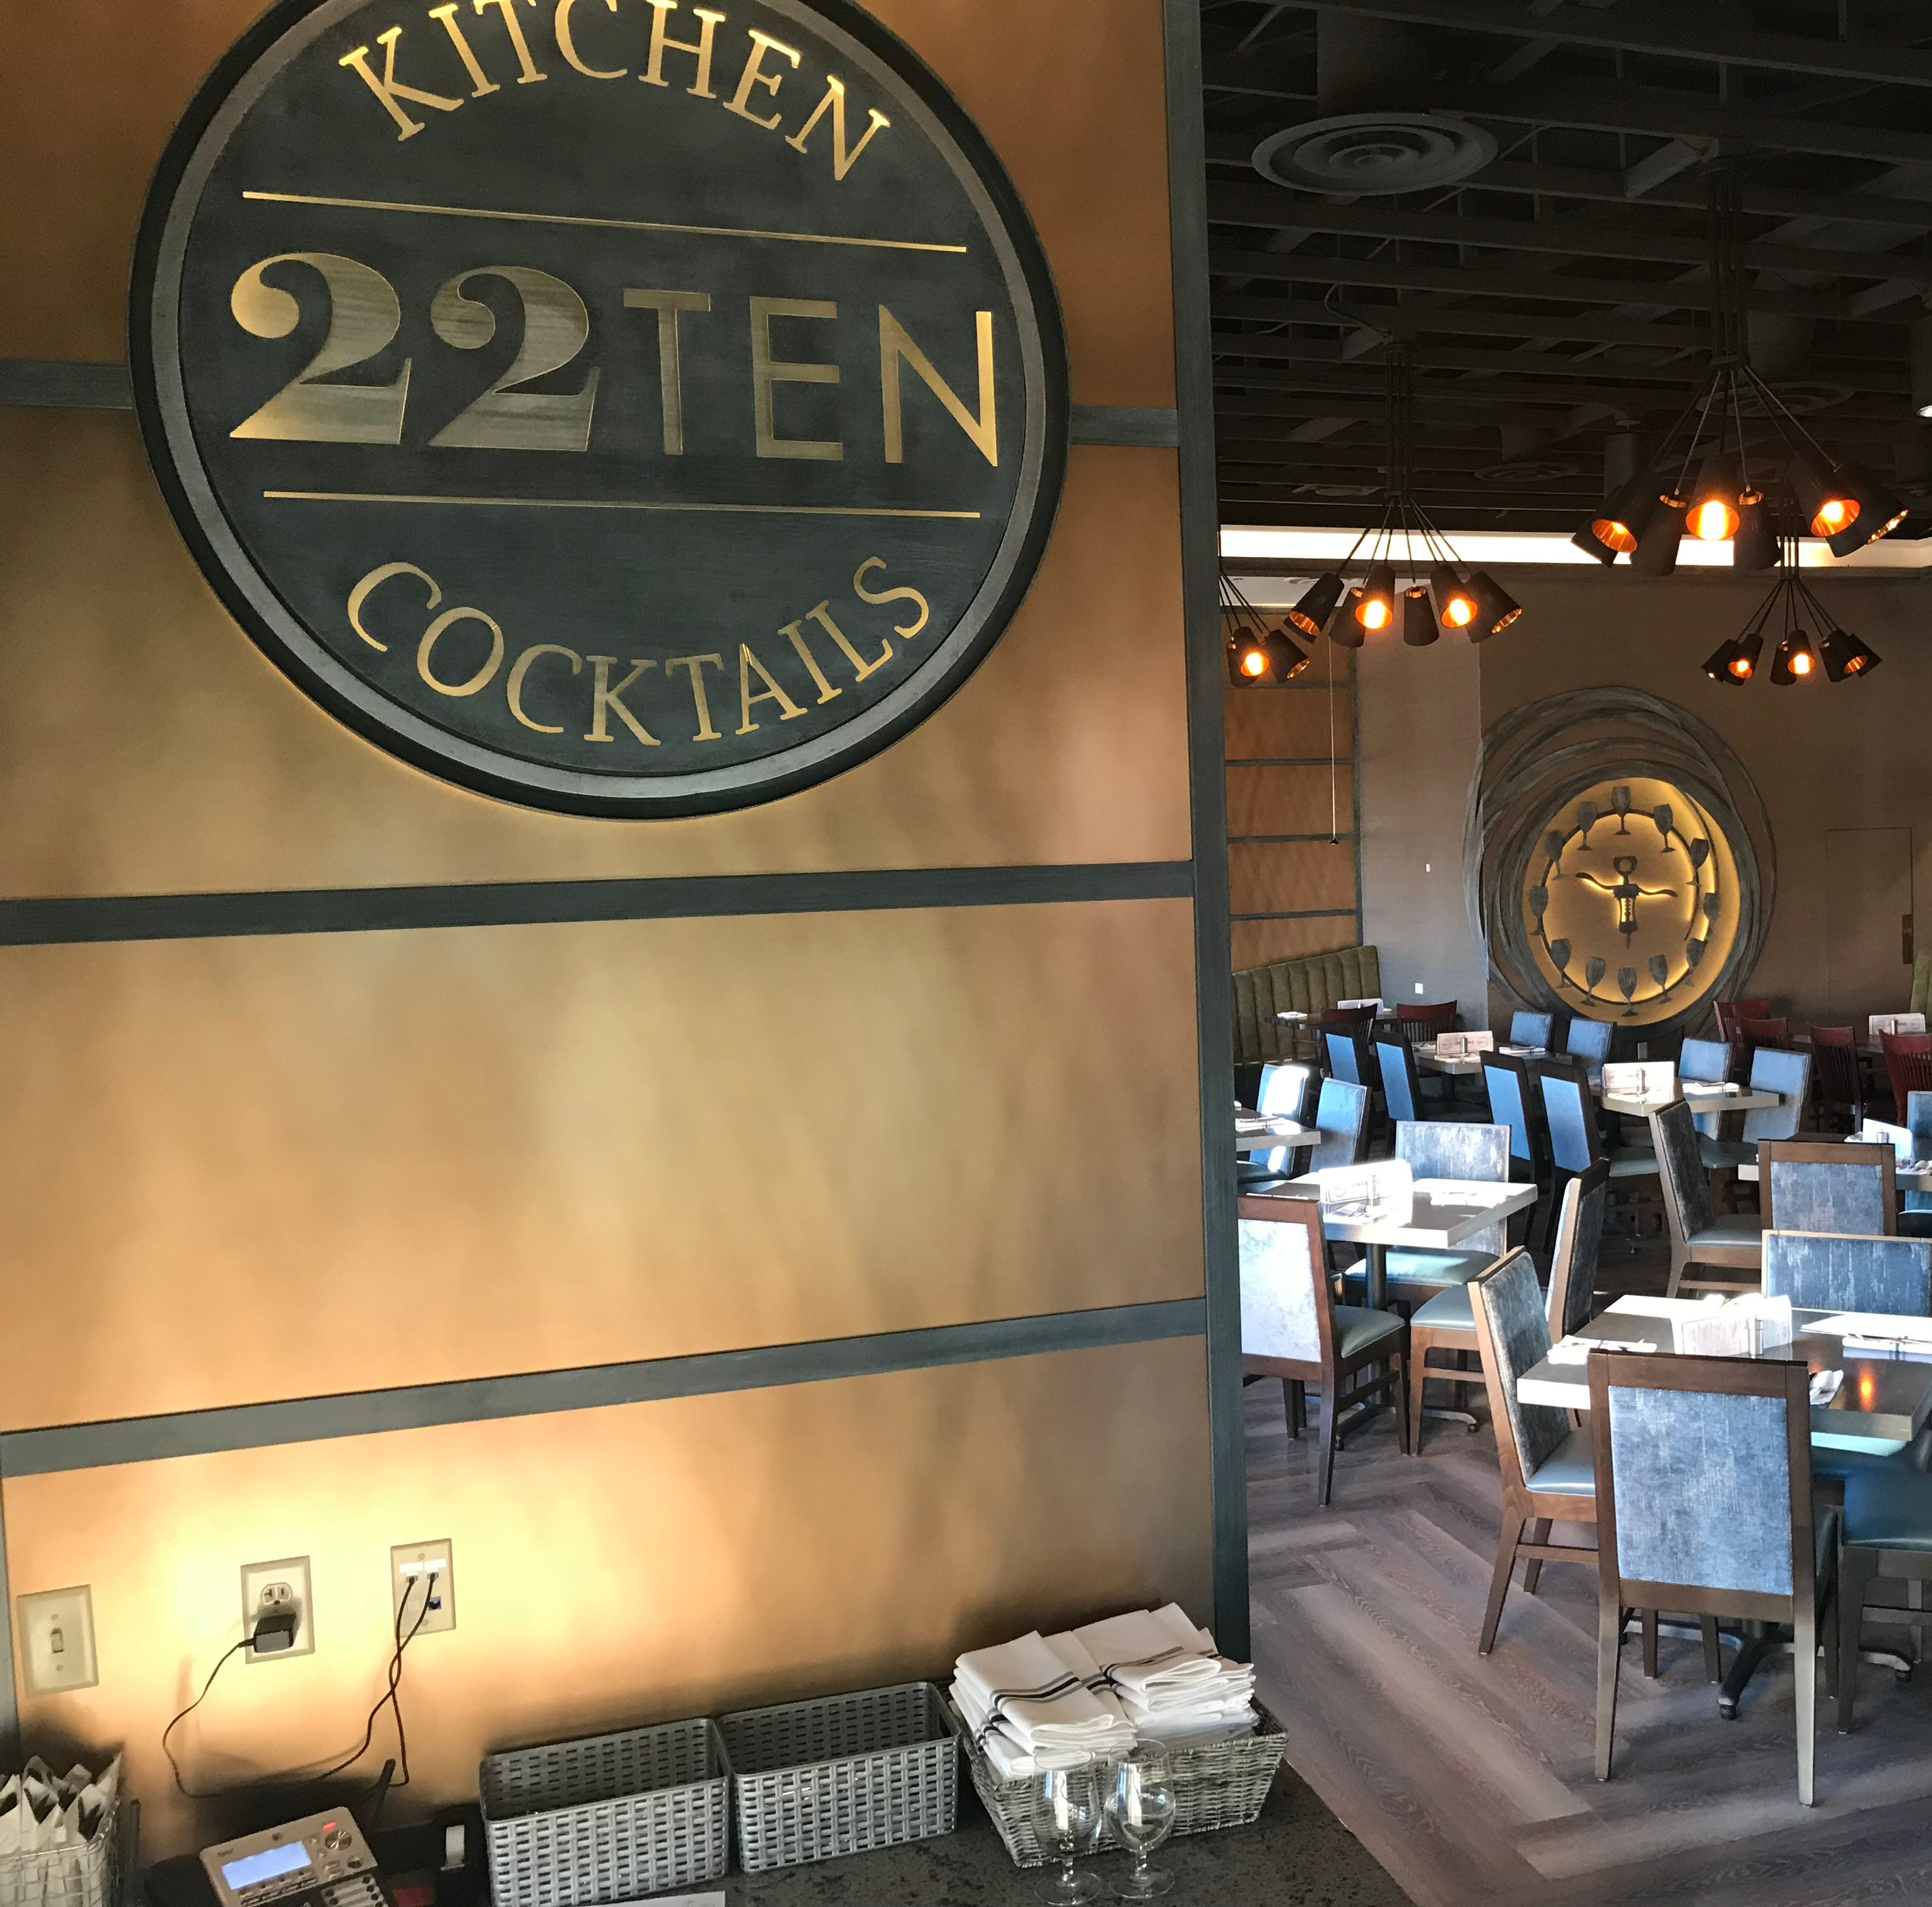 22TEN brings 'eclectic American' flavors to southwestern Sioux Falls